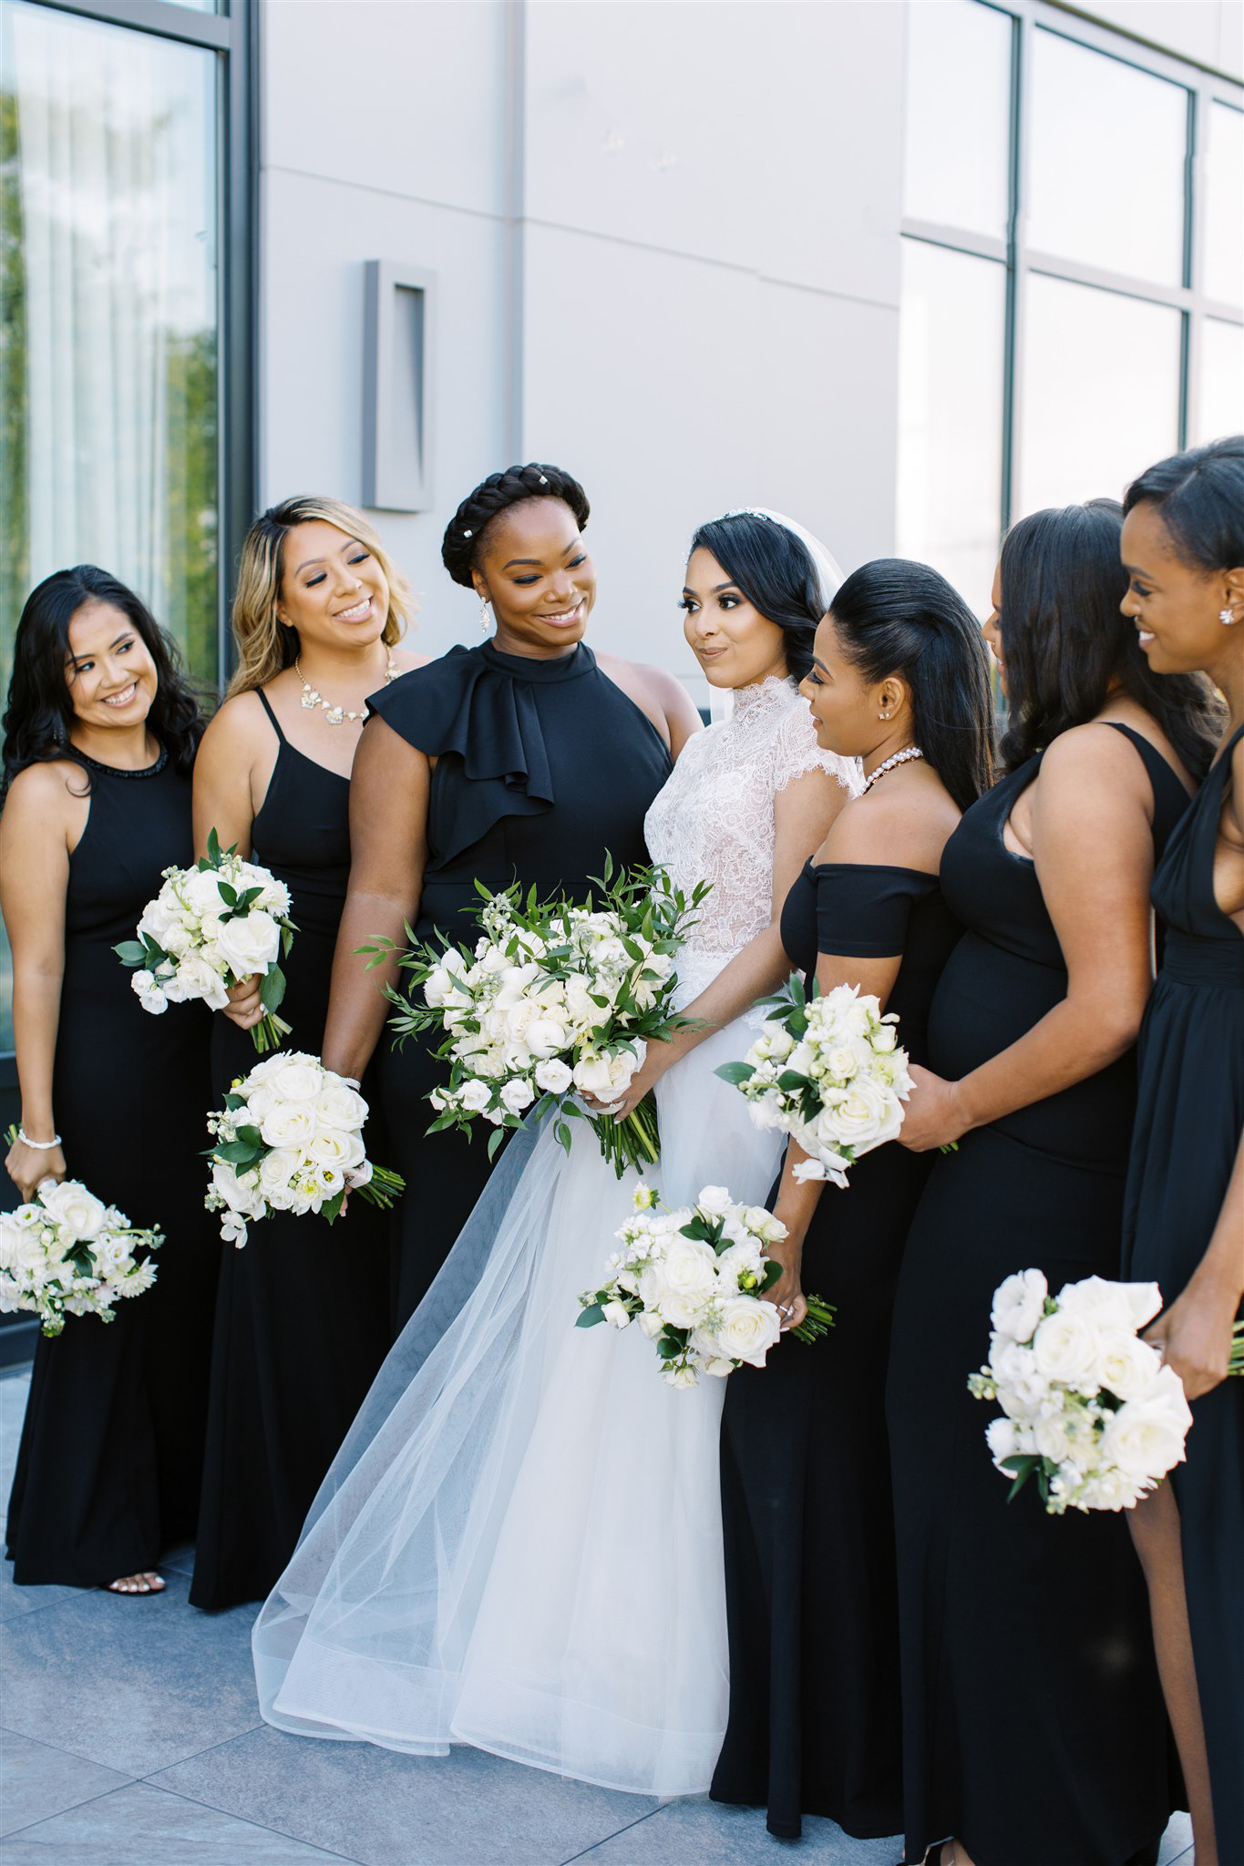 bride standing with bridesmaids wearing black dresses